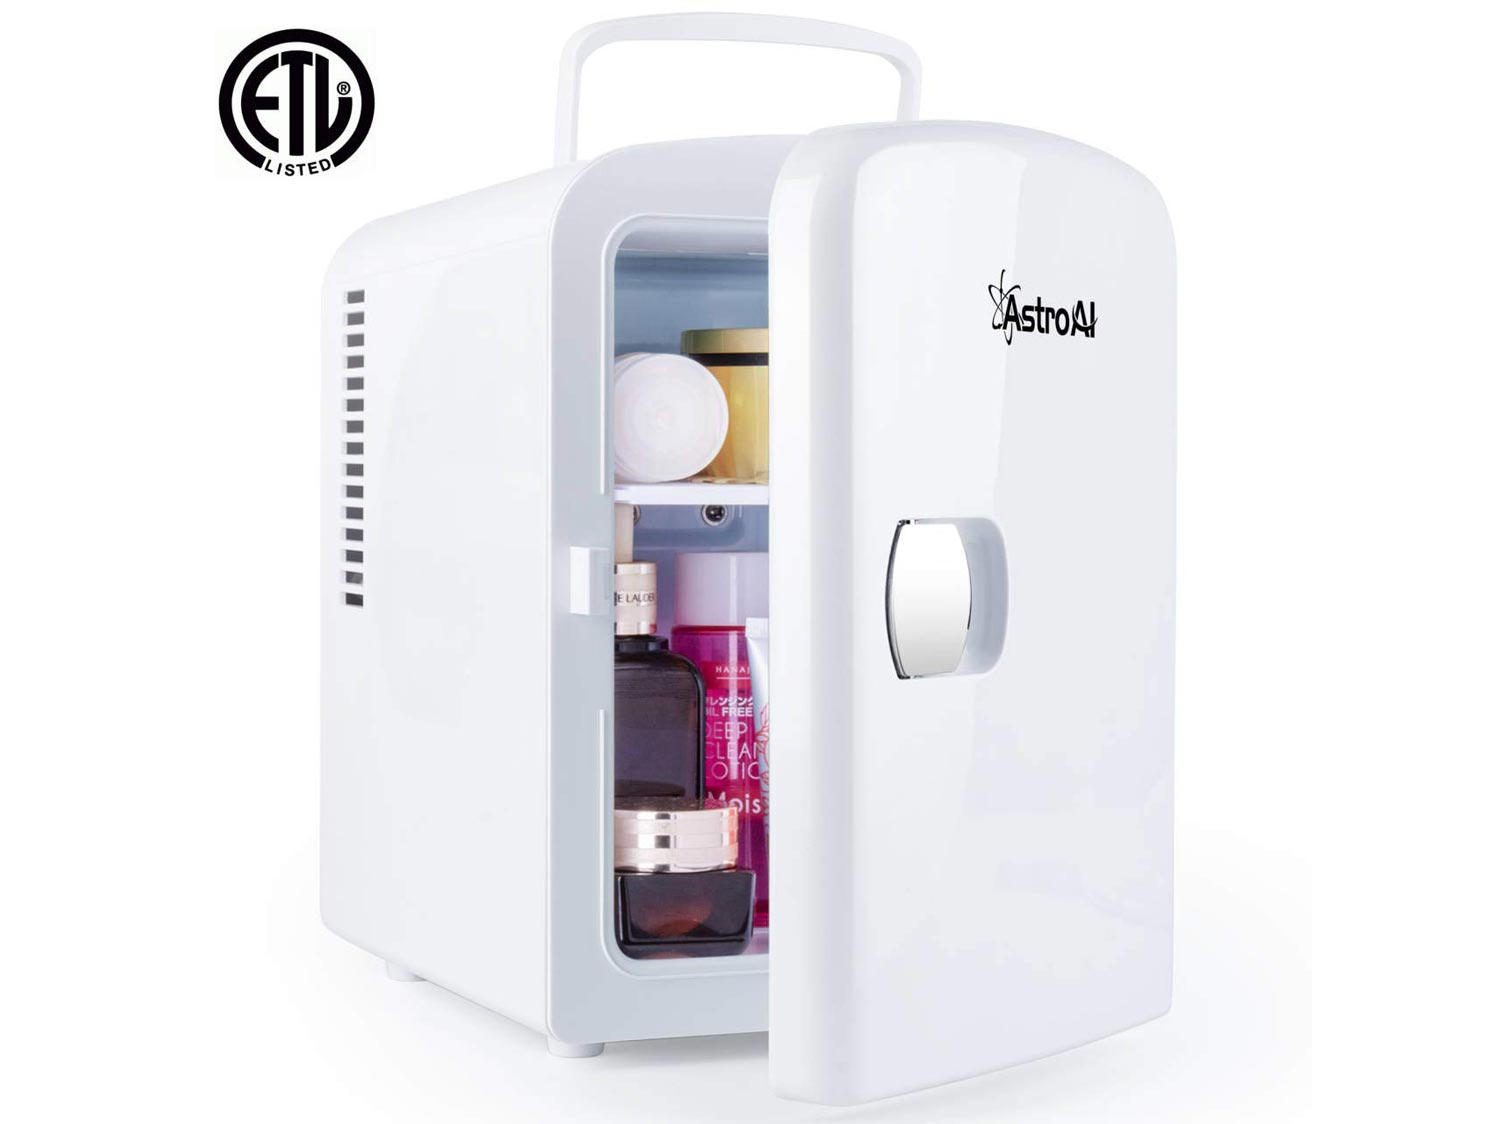 AstroAI Mini Fridge Cooler and Warmer